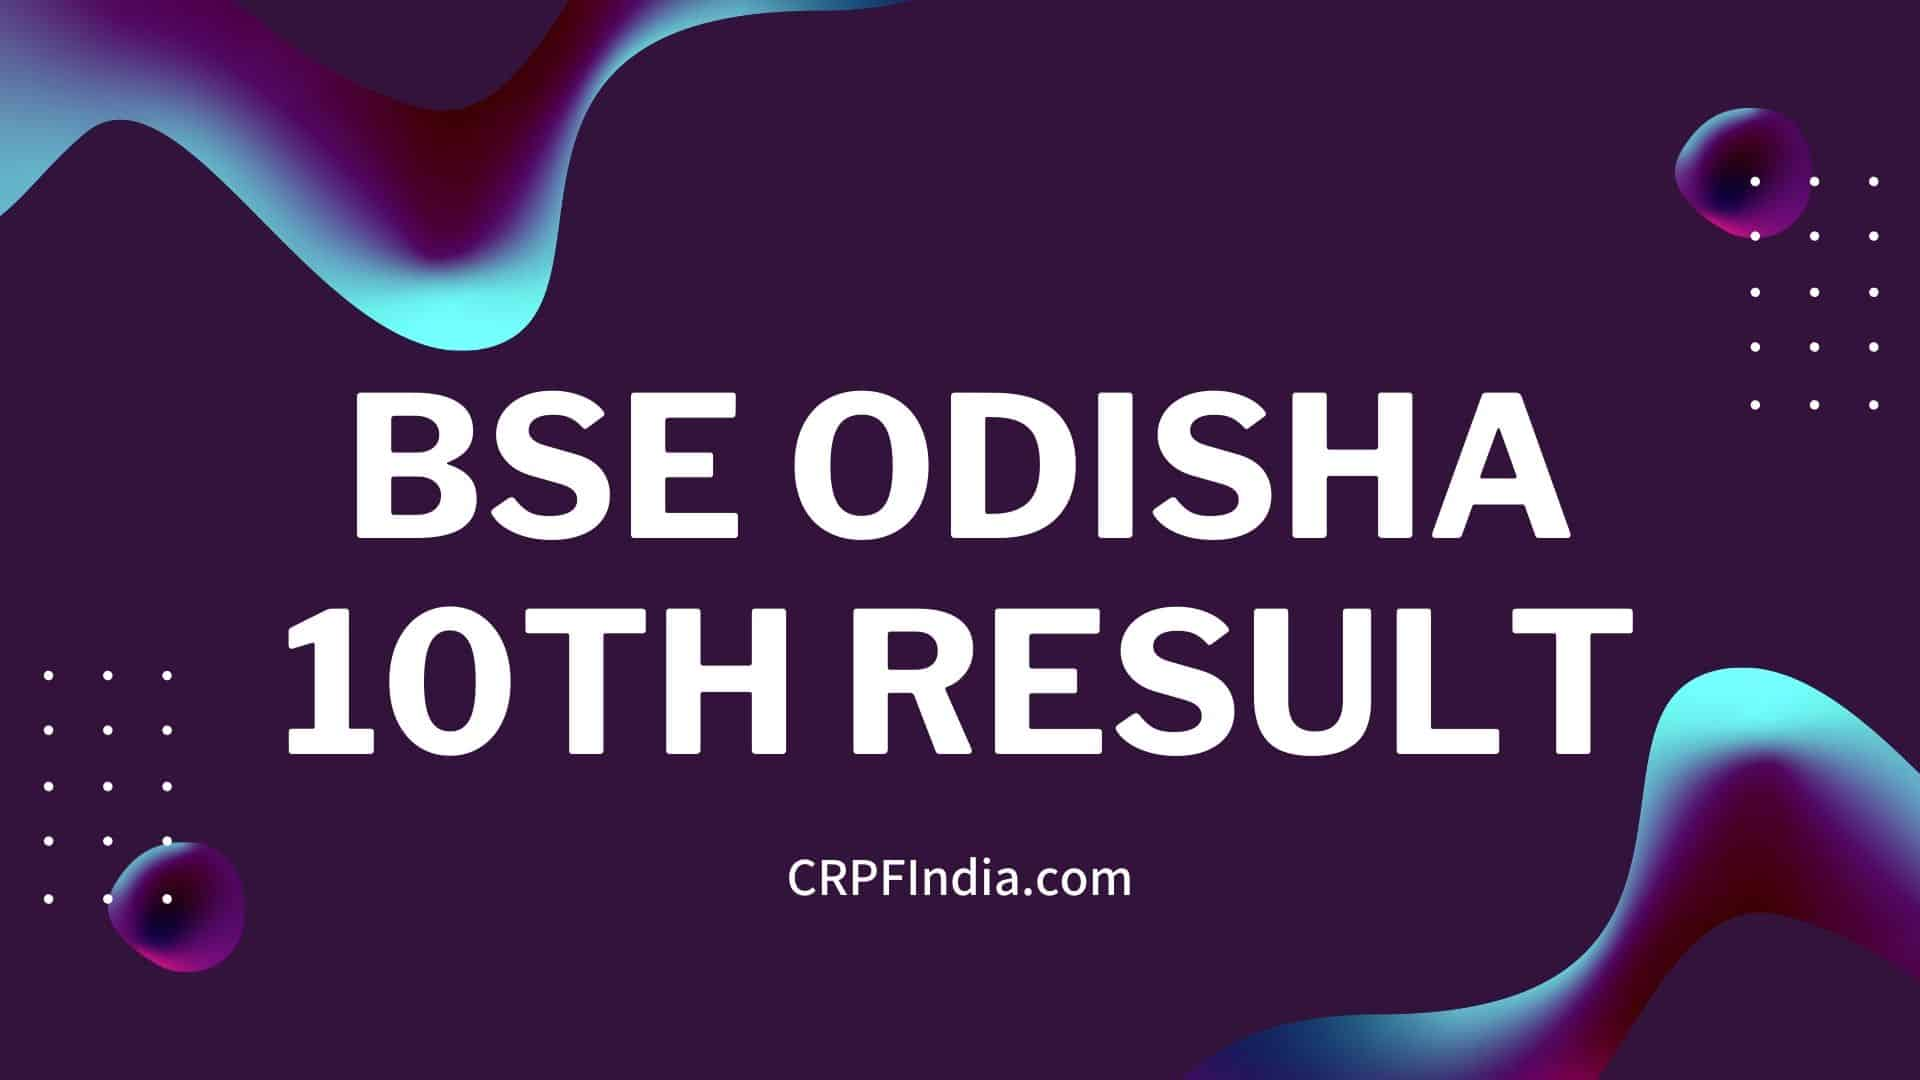 Photo of BSE Odisha 10th result 2020, Odisha HSC Result 2020 date and link here